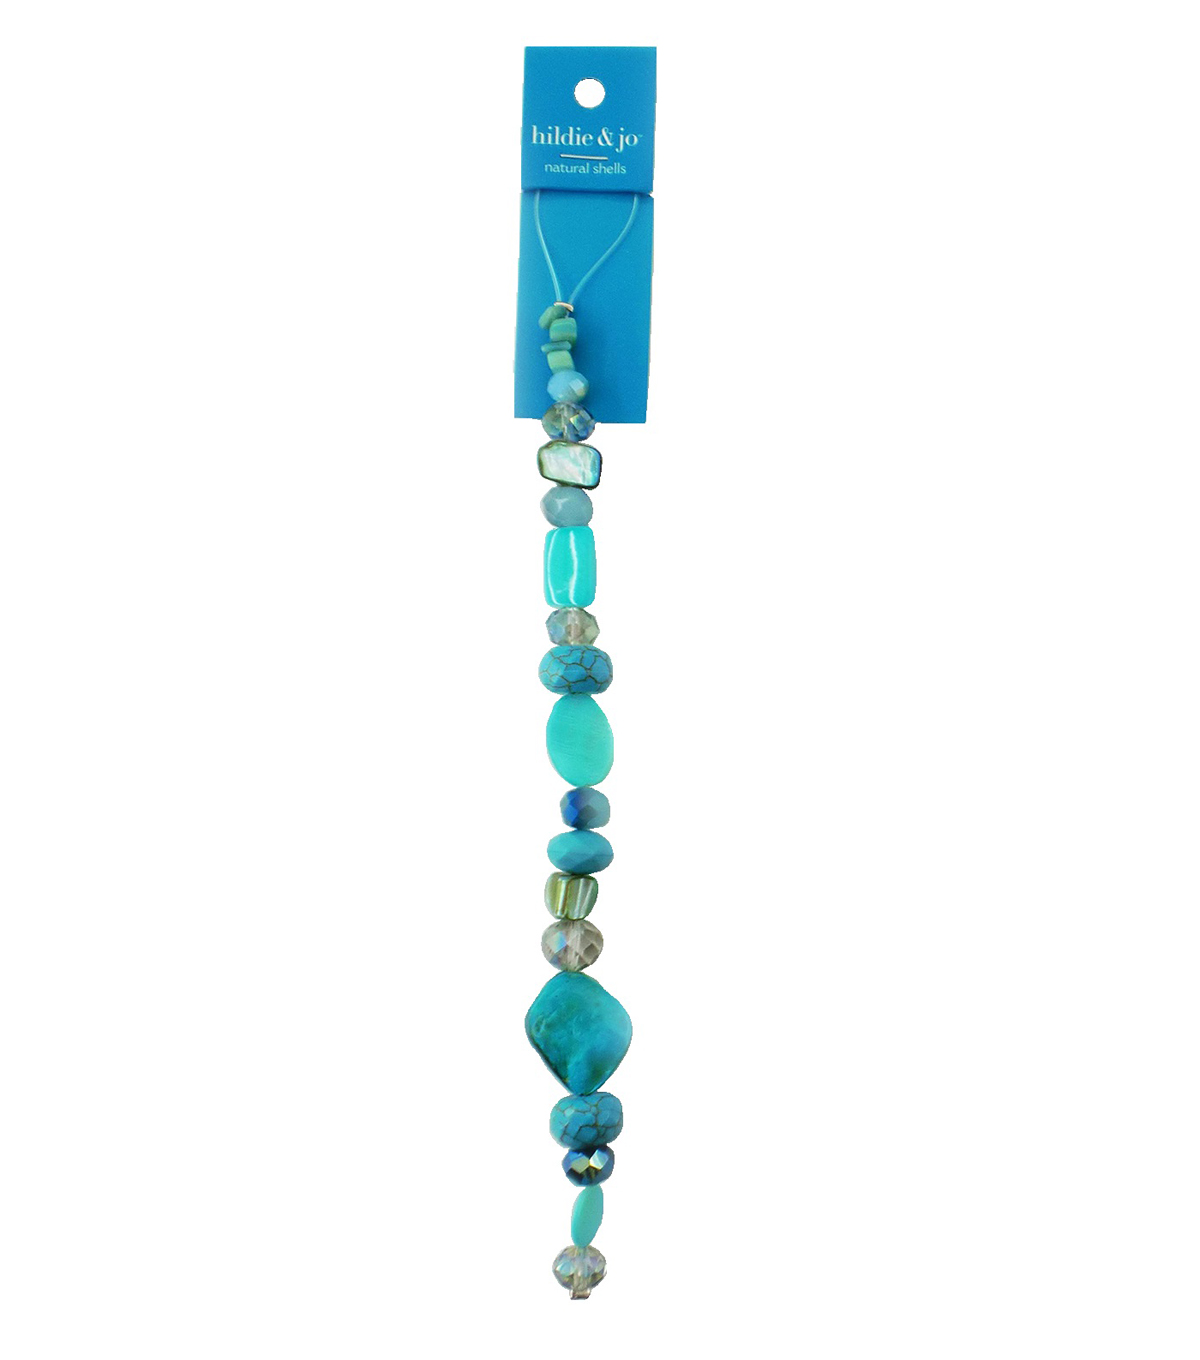 hildie & jo 7\u0027\u0027 Shell & Glass Beads Strand-Blue